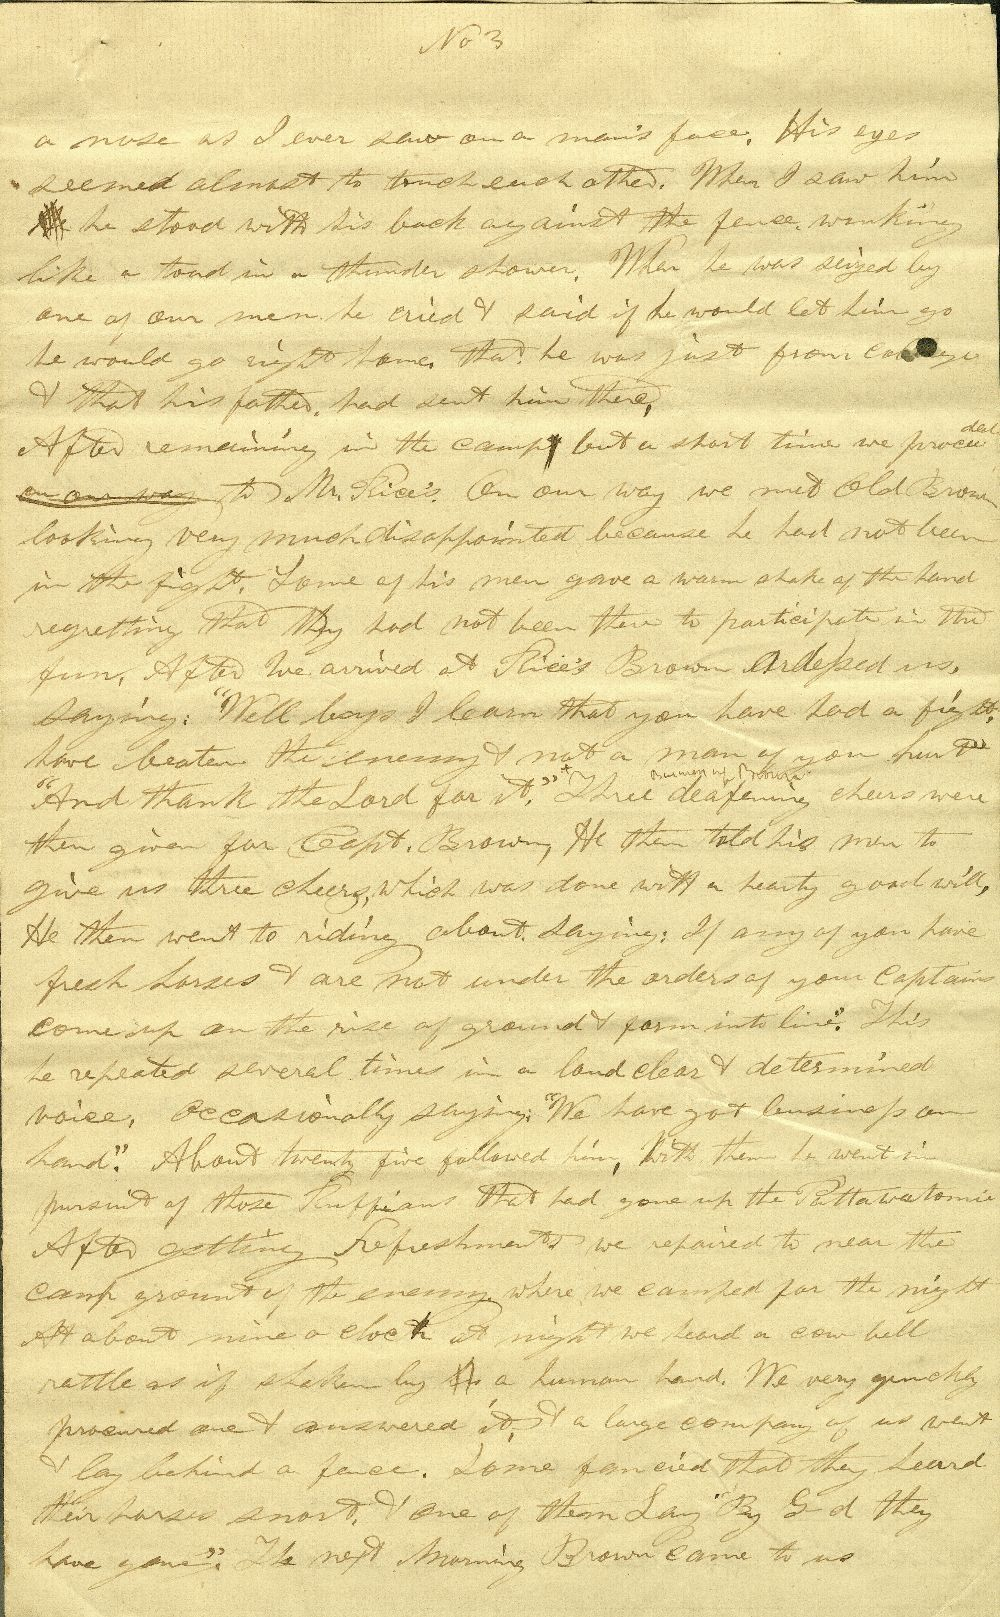 C. G. Allen's response to Redpath and Hinton's call for information about John Brown - 9